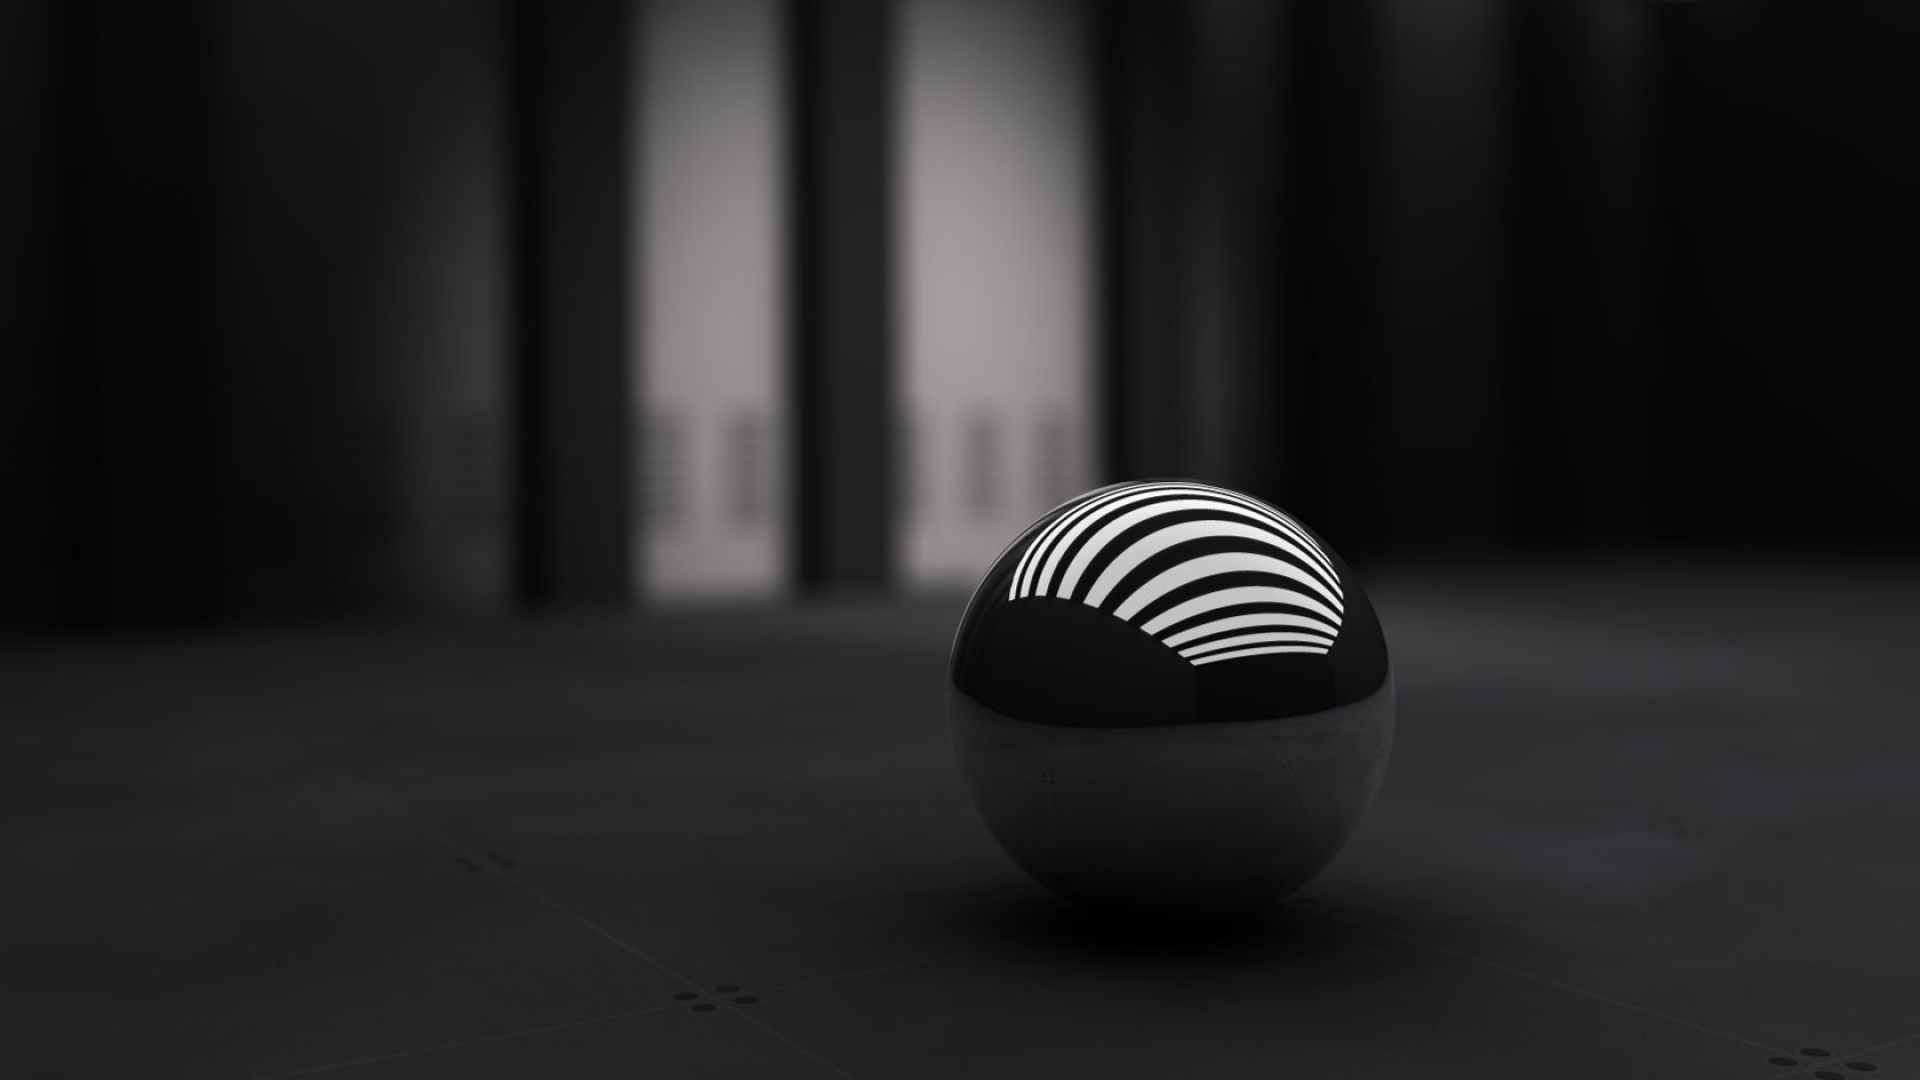 Must see Wallpaper Marble 1080p - black_ball_band_white_68396_1920x1080  Perfect Image Reference_100754.jpg